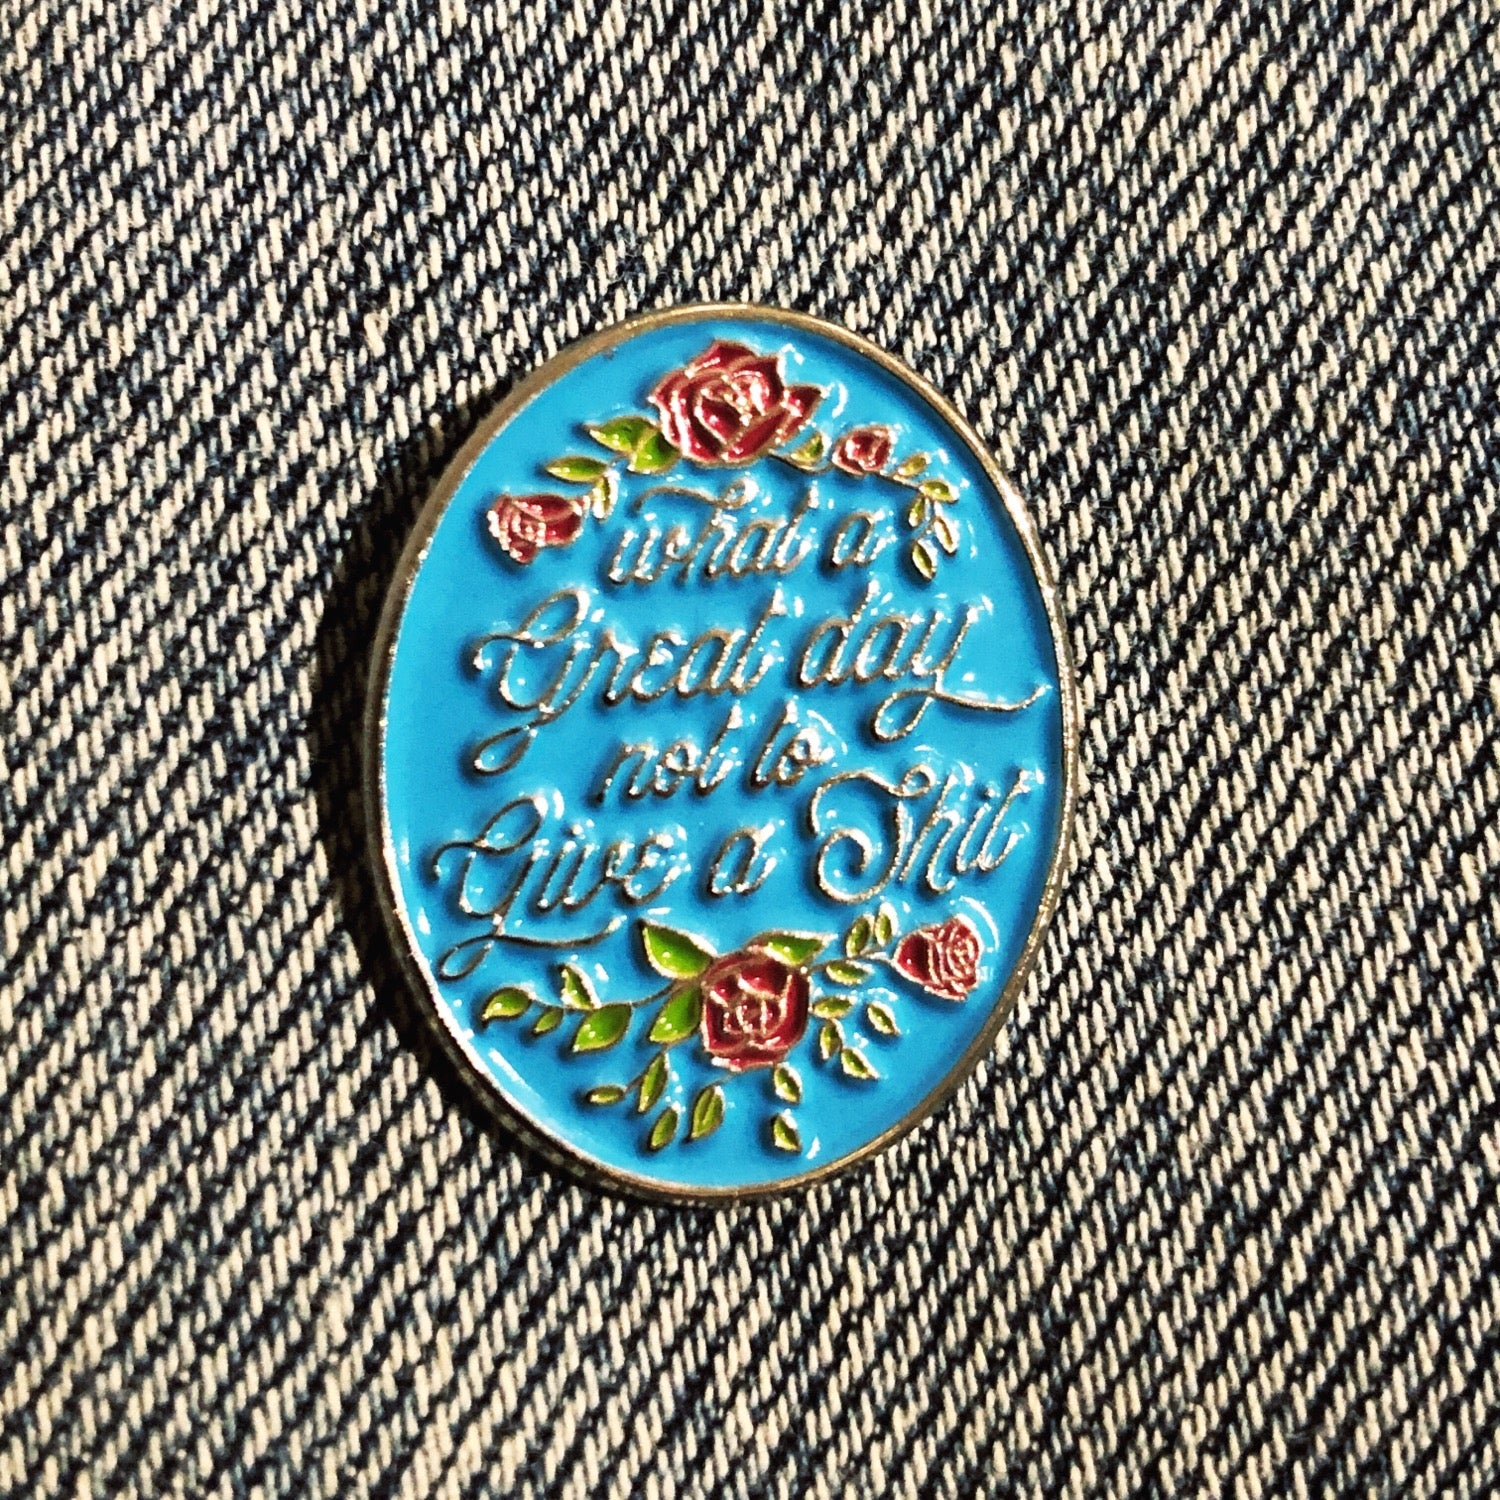 Great Day Not to Give a Shit enamel pin